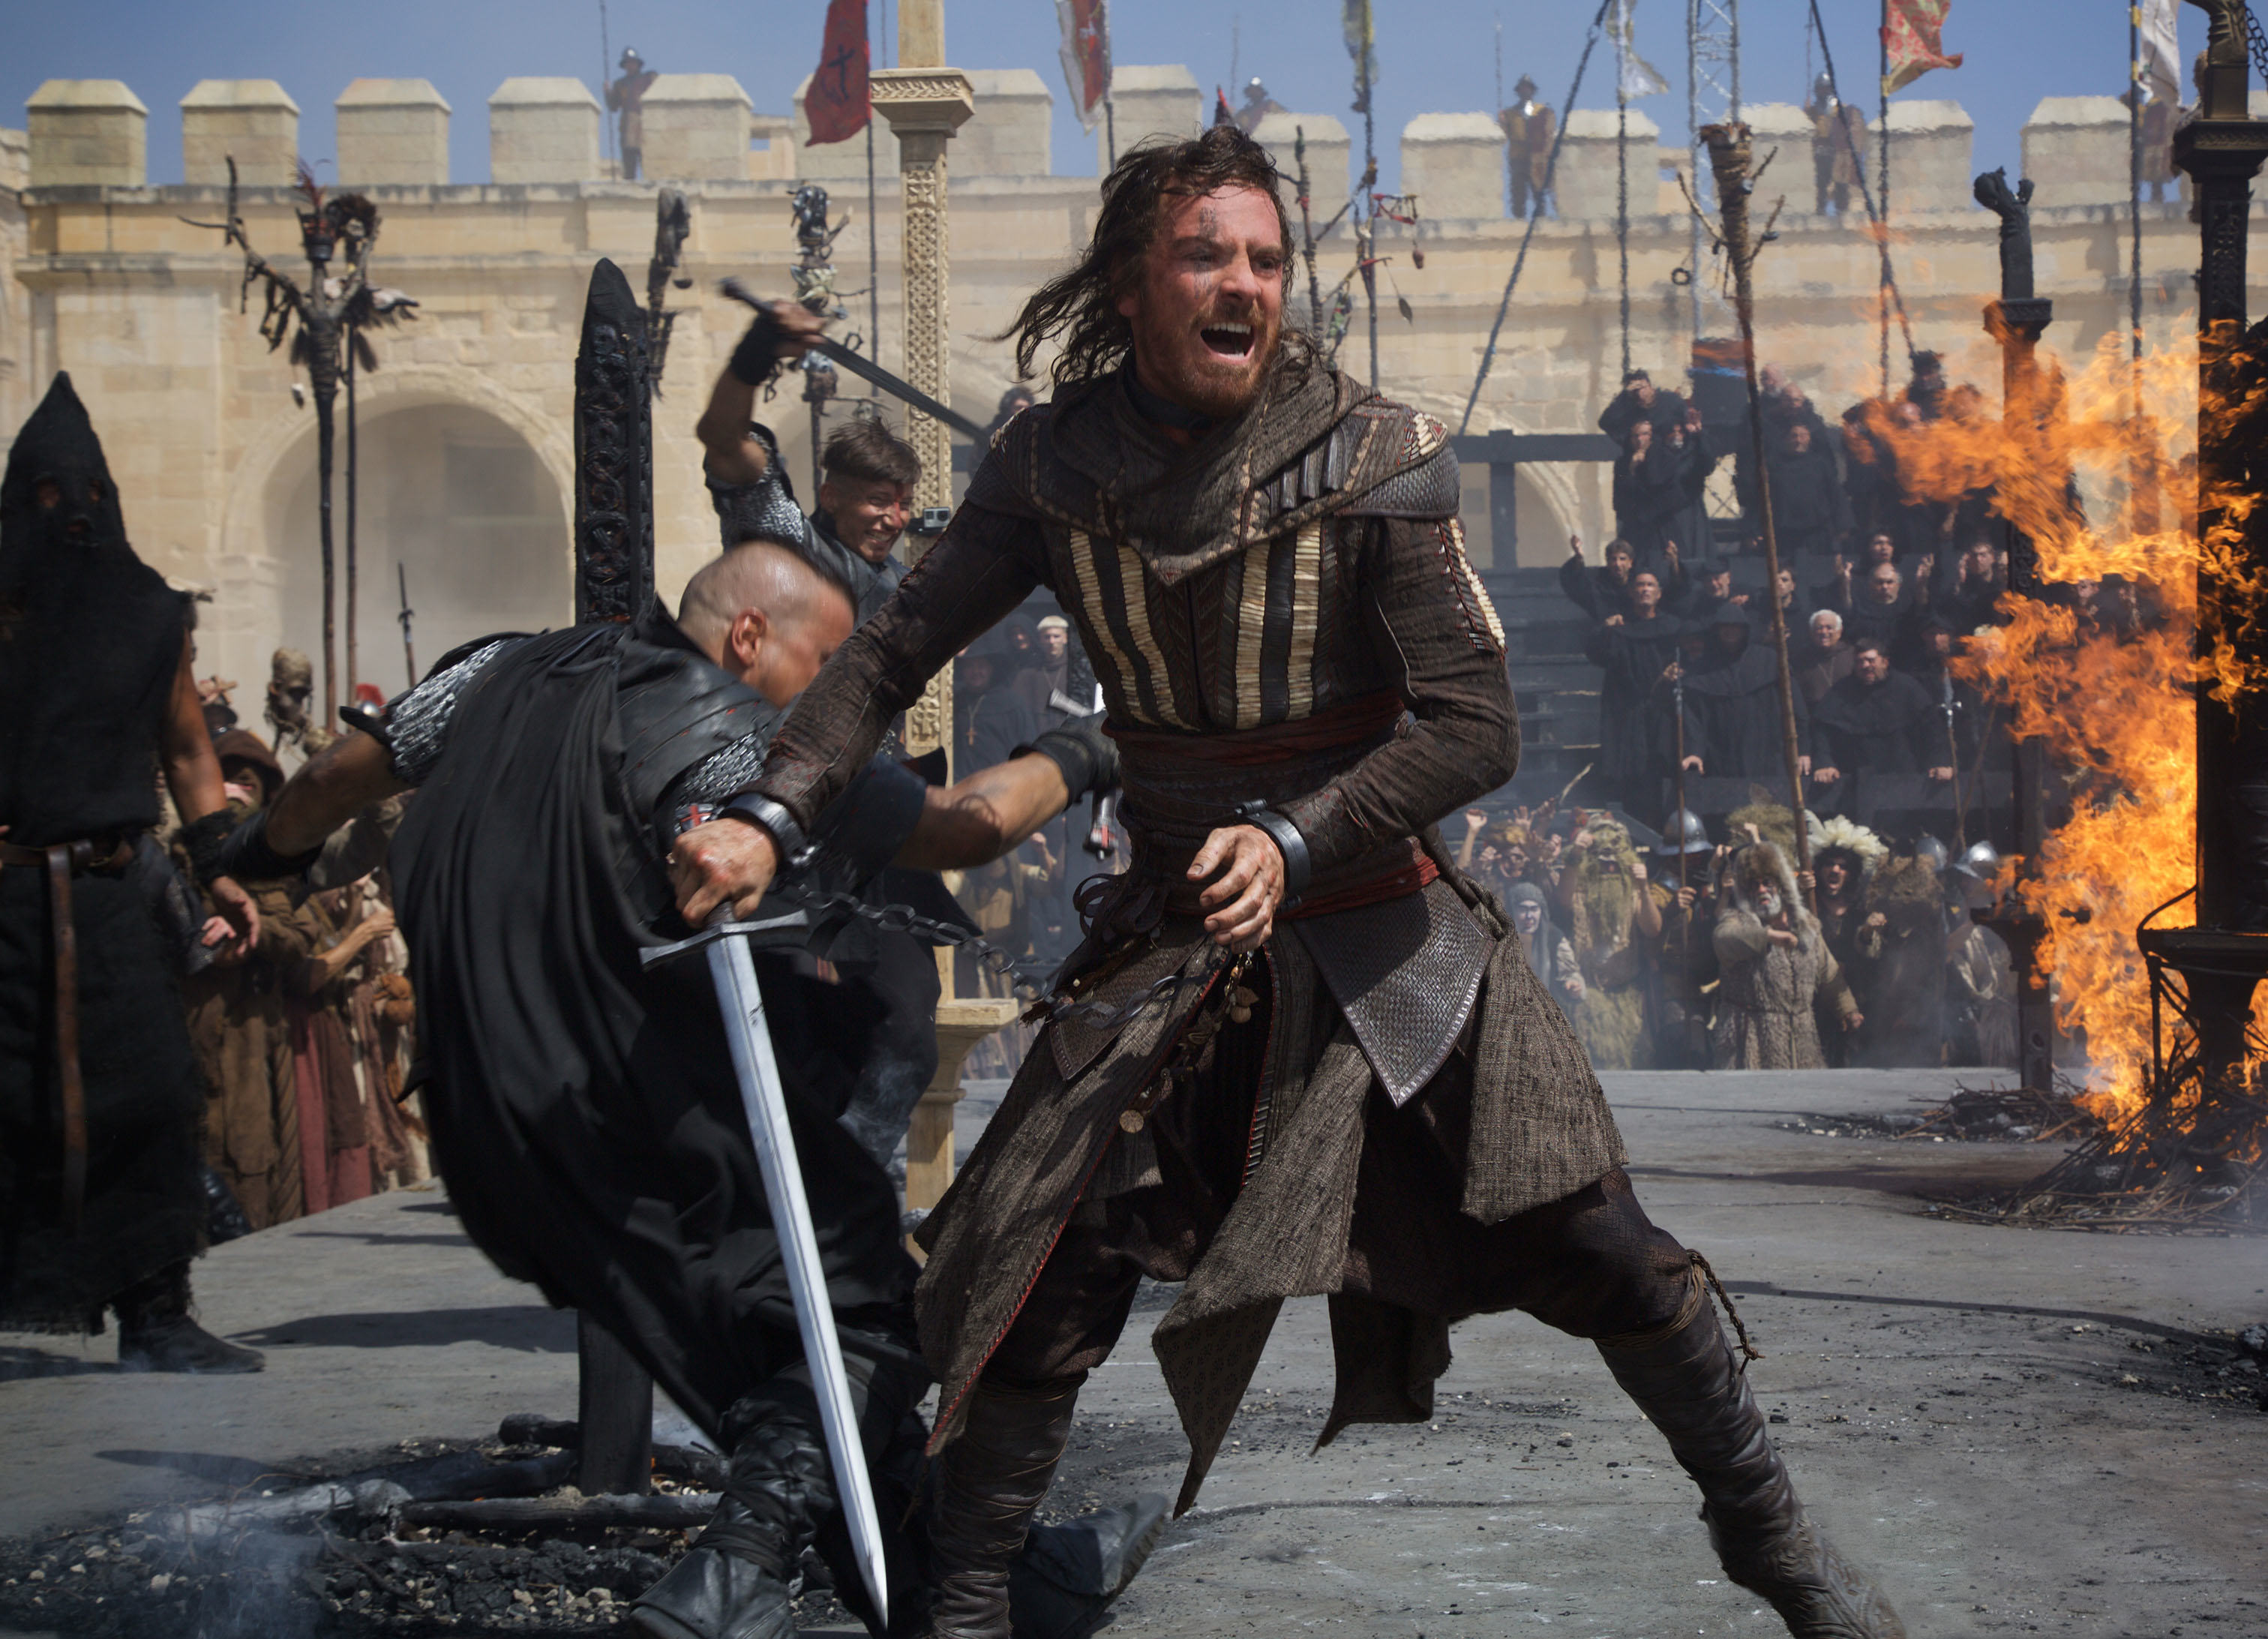 df 01952 r crop Assassins Creed Movie Might Already Have A Sequel Greenlit